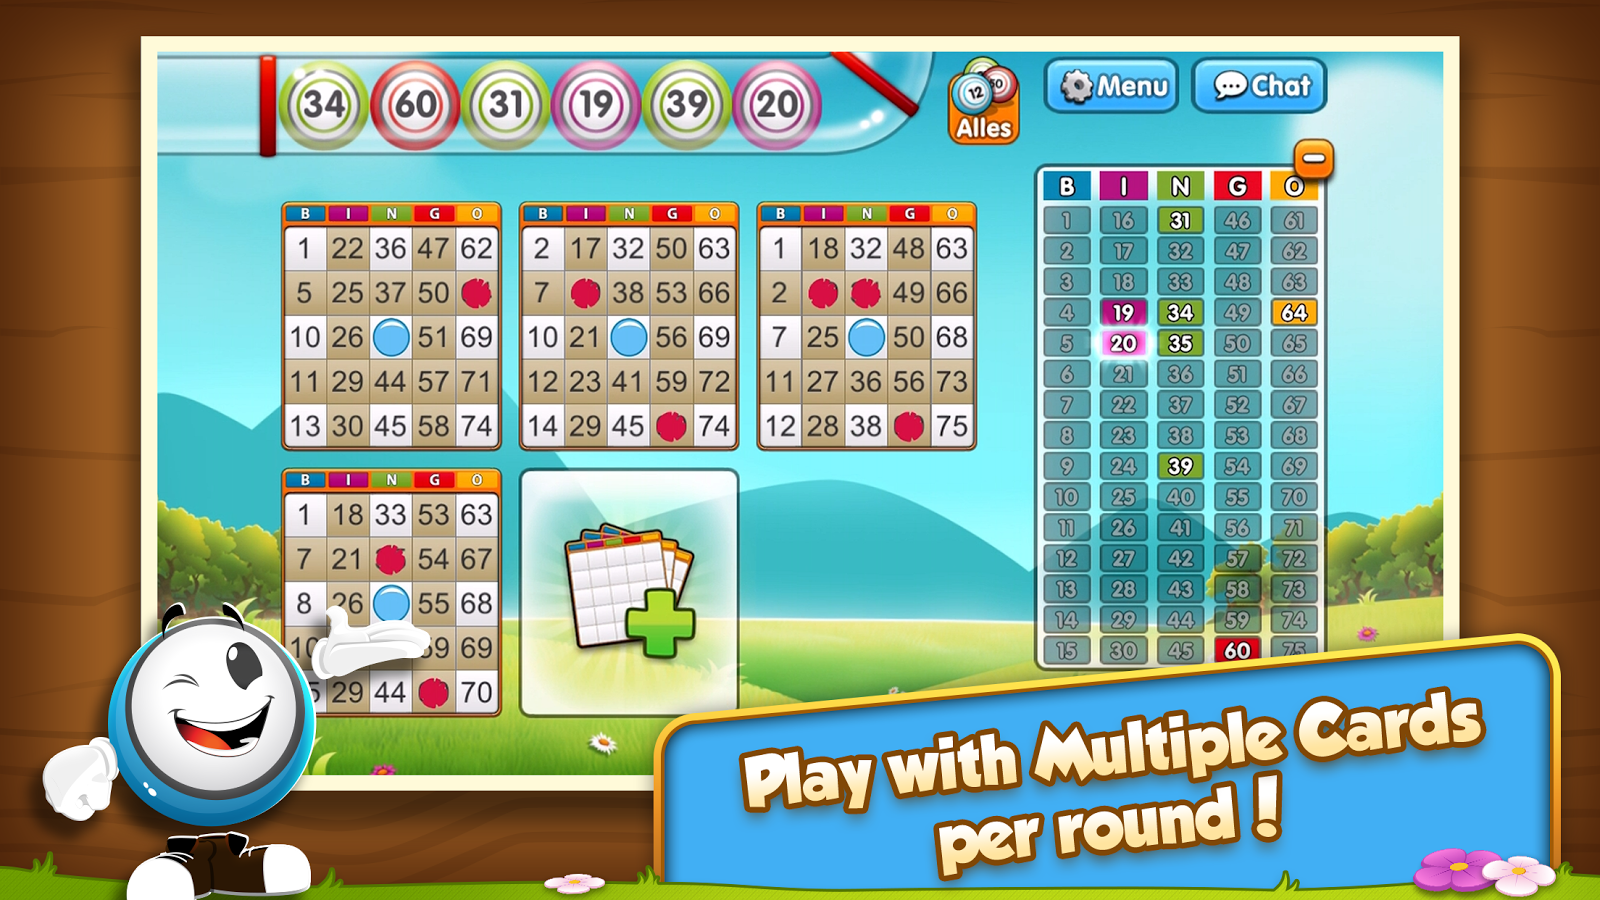 GamePoint Bingo - Android Apps on Google Play  GamePoint Bingo...